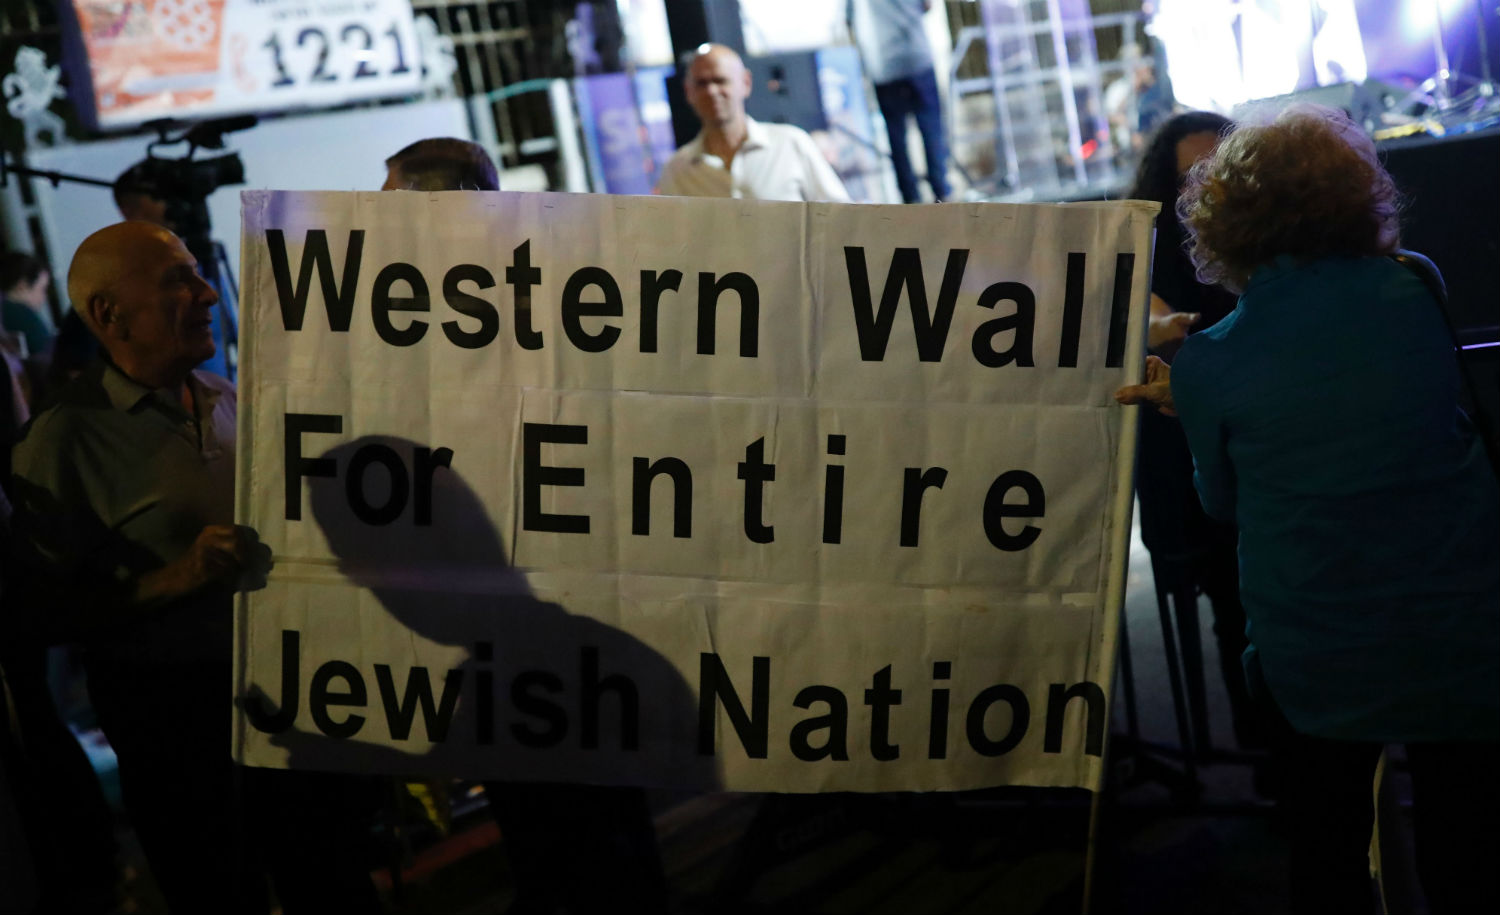 Israelis gather outside prime minister Benjamin Netanyahu's residence in Jerusalem on July 1, 2017, to demonstrate against a government decision to abandon a deal to allow women and men to pray together at the Western Wall. THOMAS COEX/AFP/Getty Images.